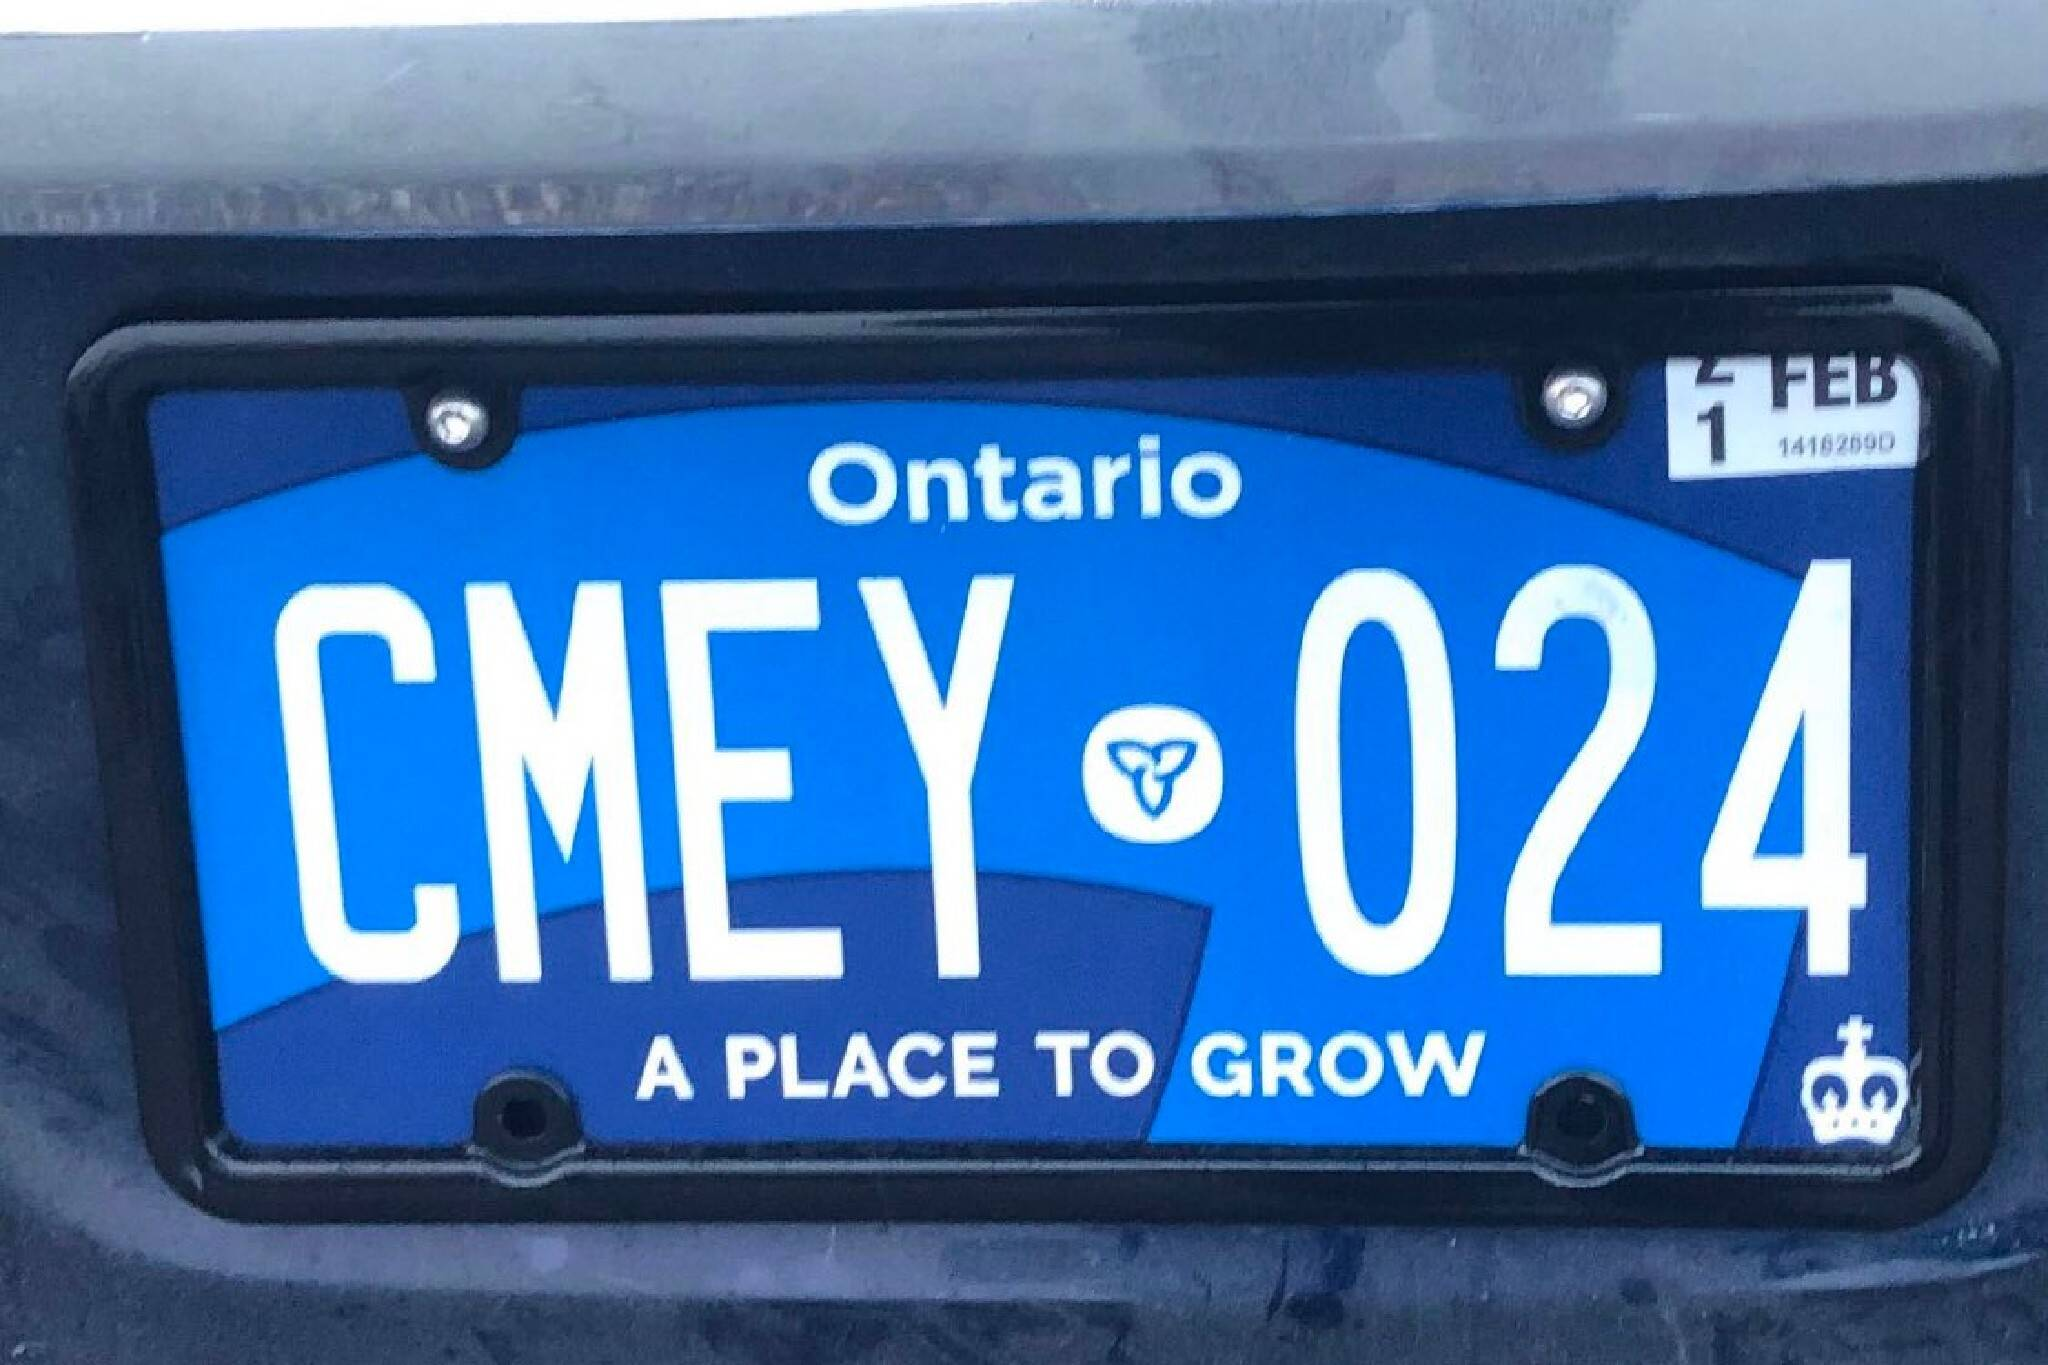 new ontario license plate